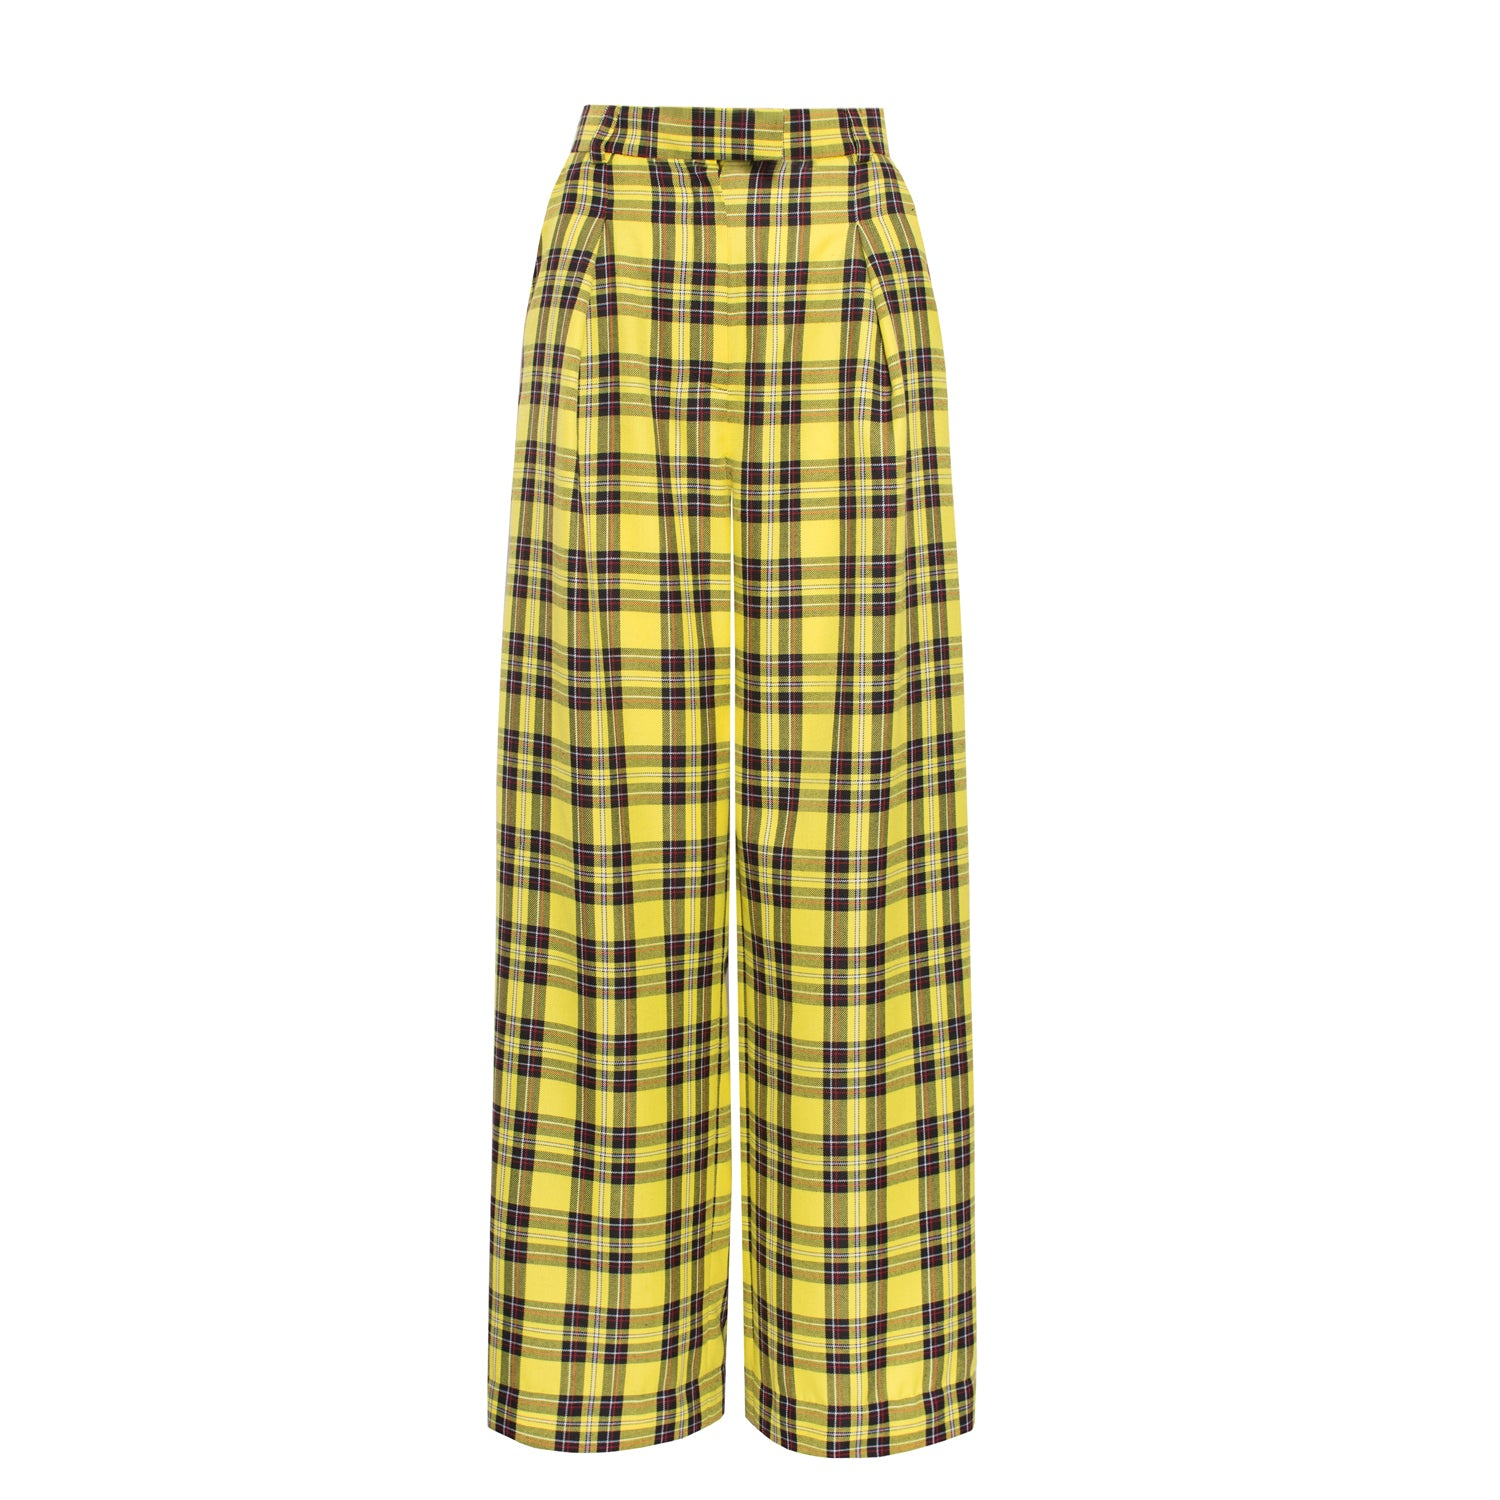 Reality Check Yellow high-rise trousers - VOLS & ORIGINAL